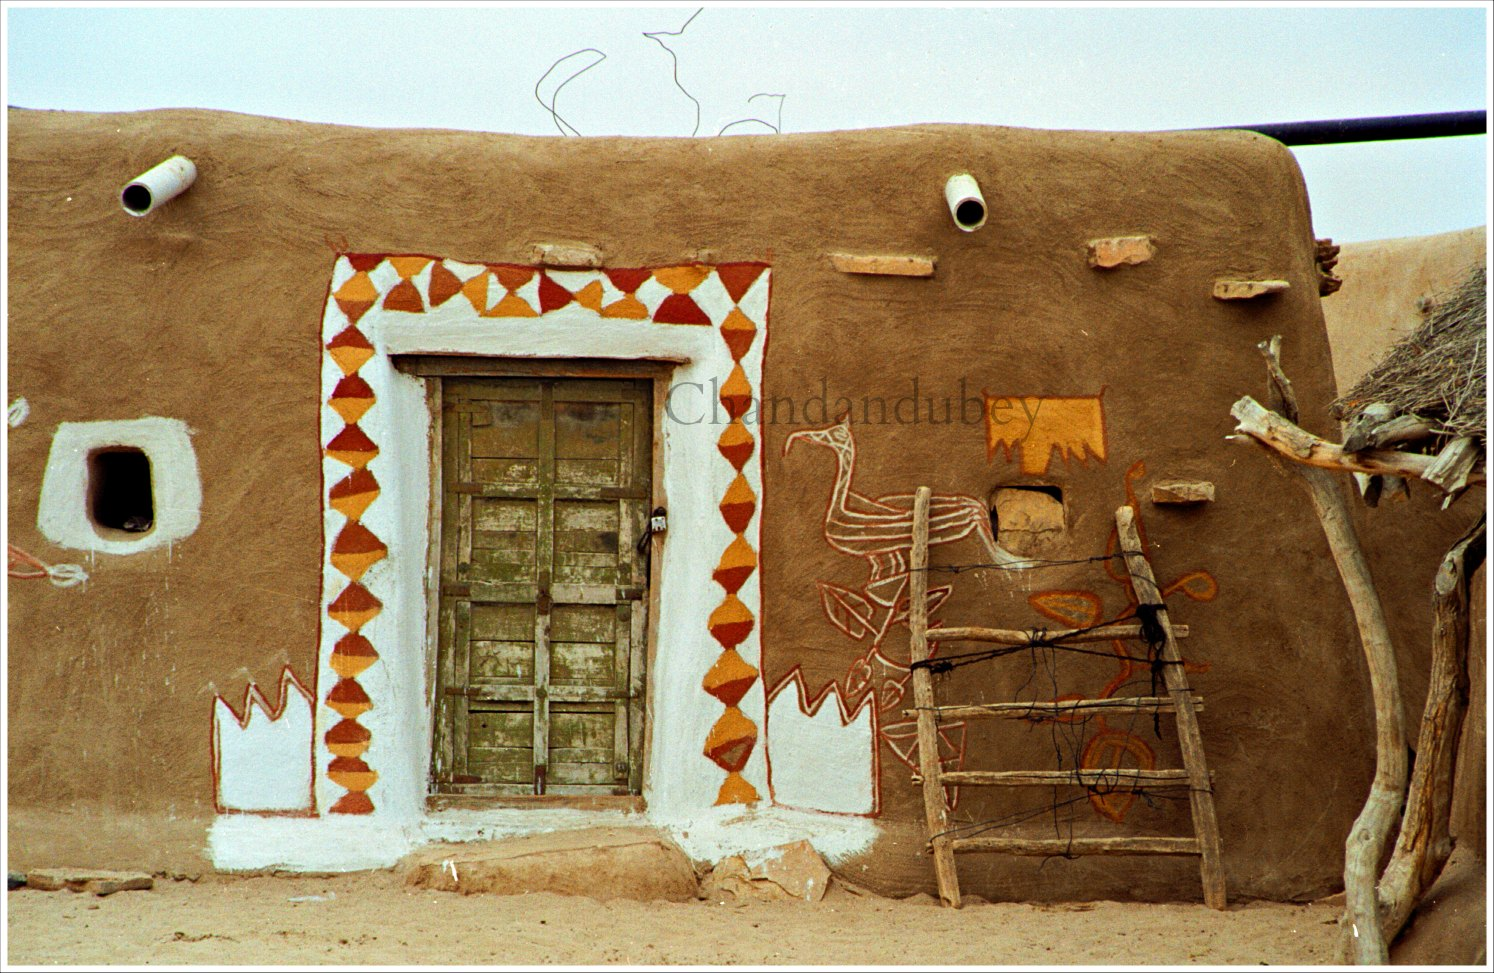 Kitchen Designers Online Girl About Home The Way We Live Mud Houses Of Jaiselmer